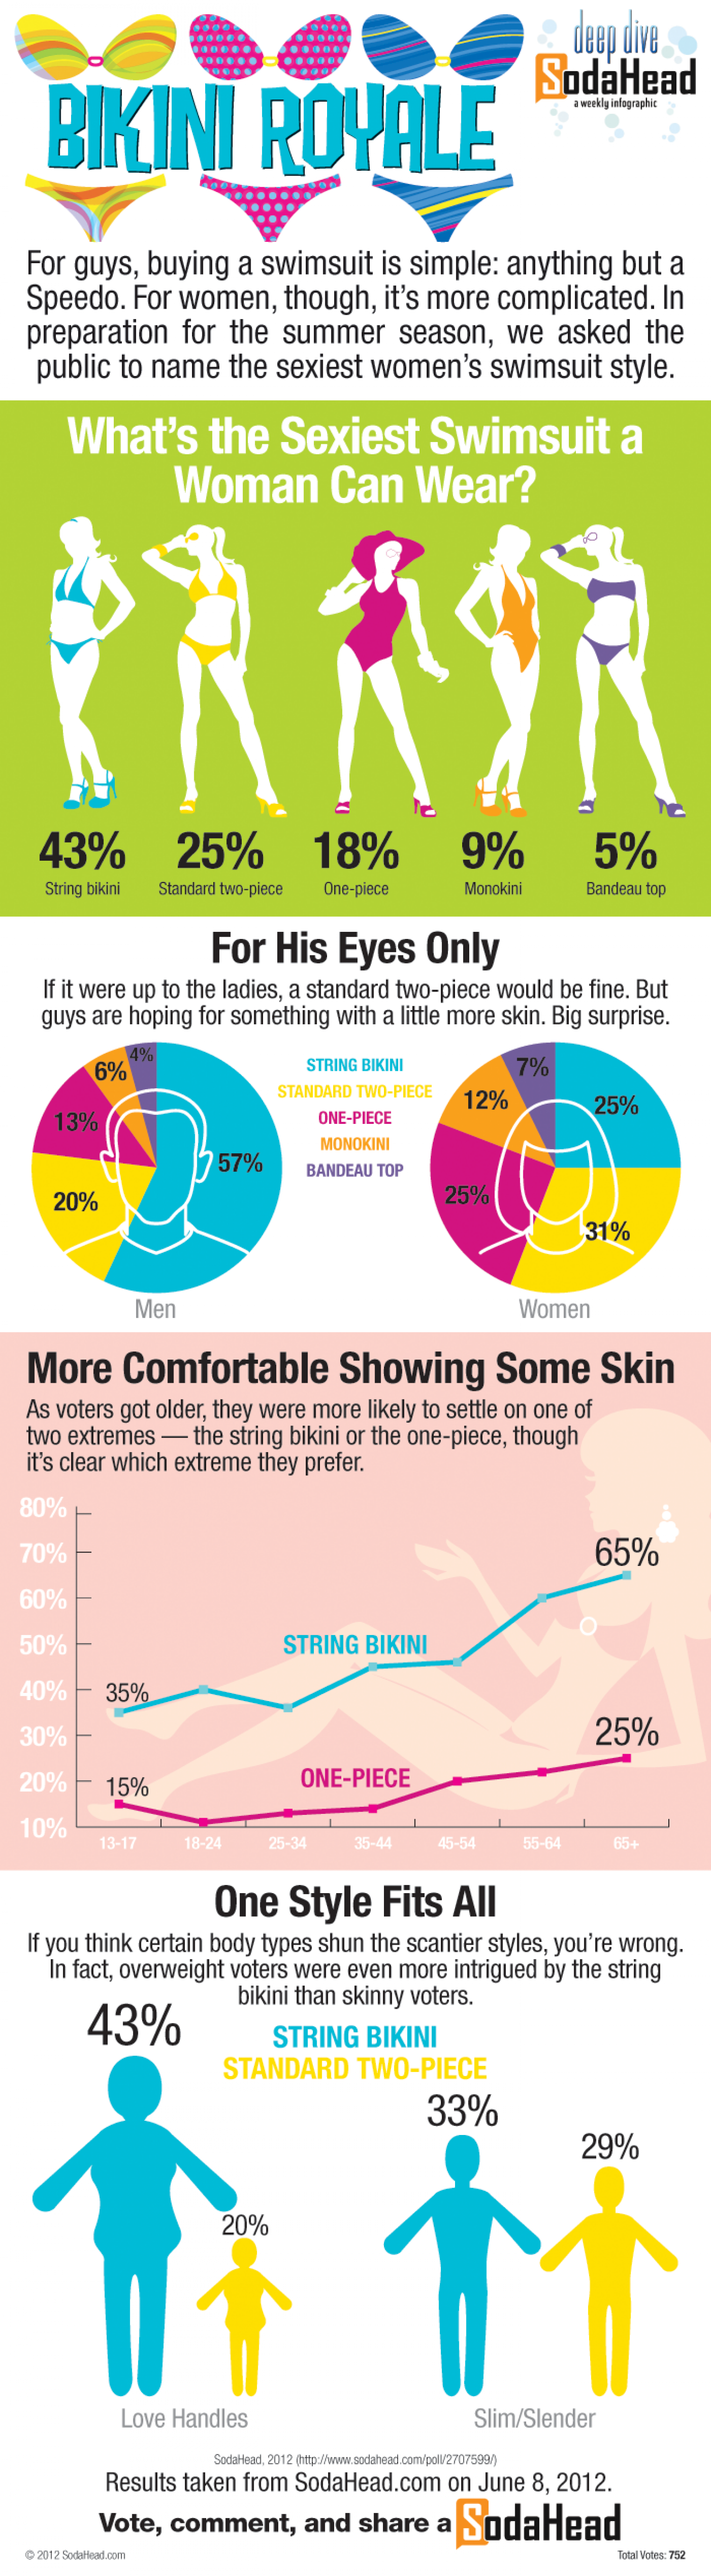 The Public Thinks a String Bikini Is the Sexiest Swimsuit Infographic